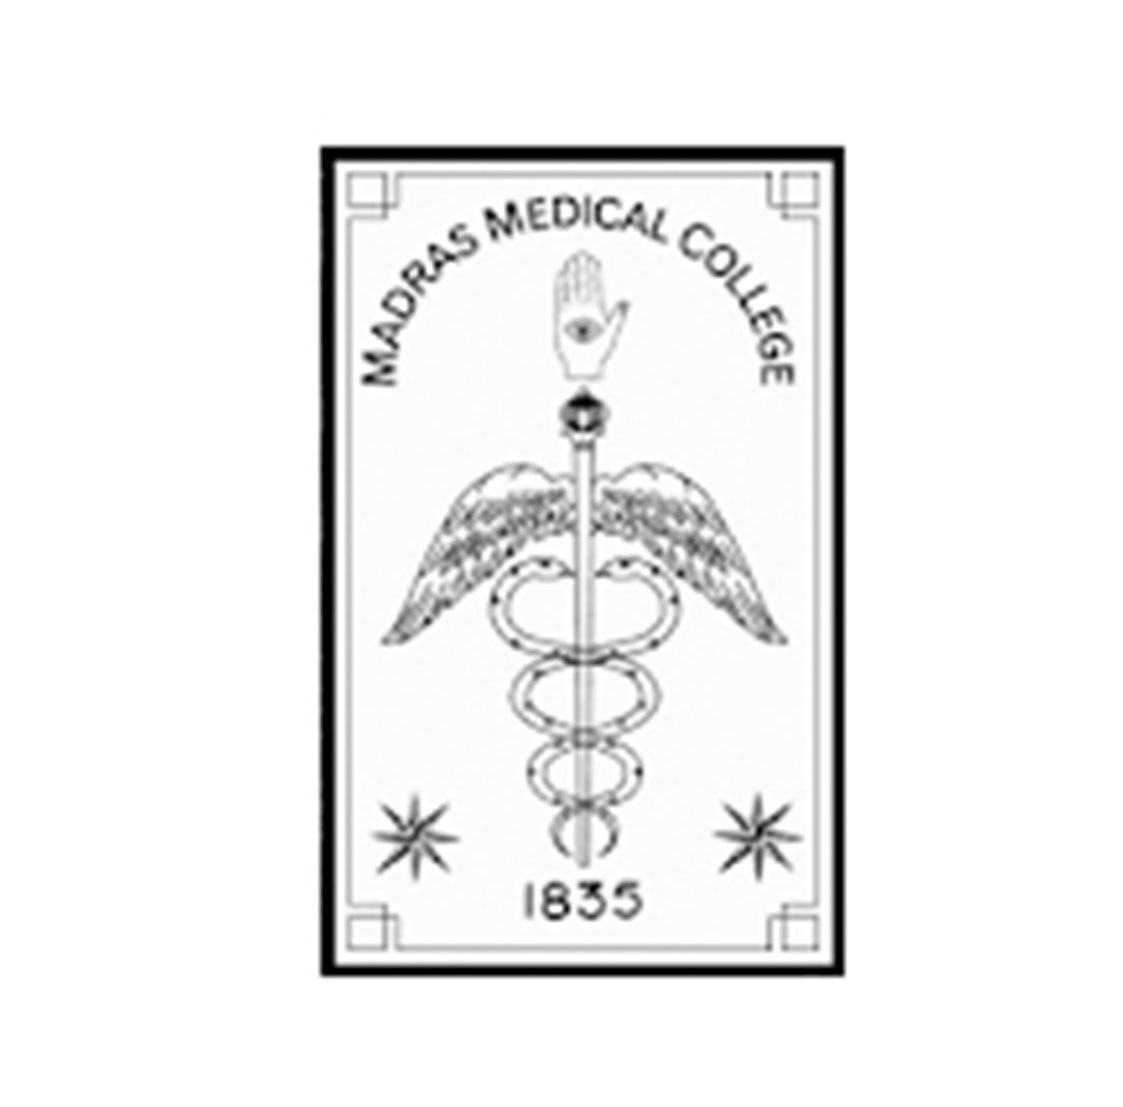 Welcome to The Advanced Medical Systems Inc.,